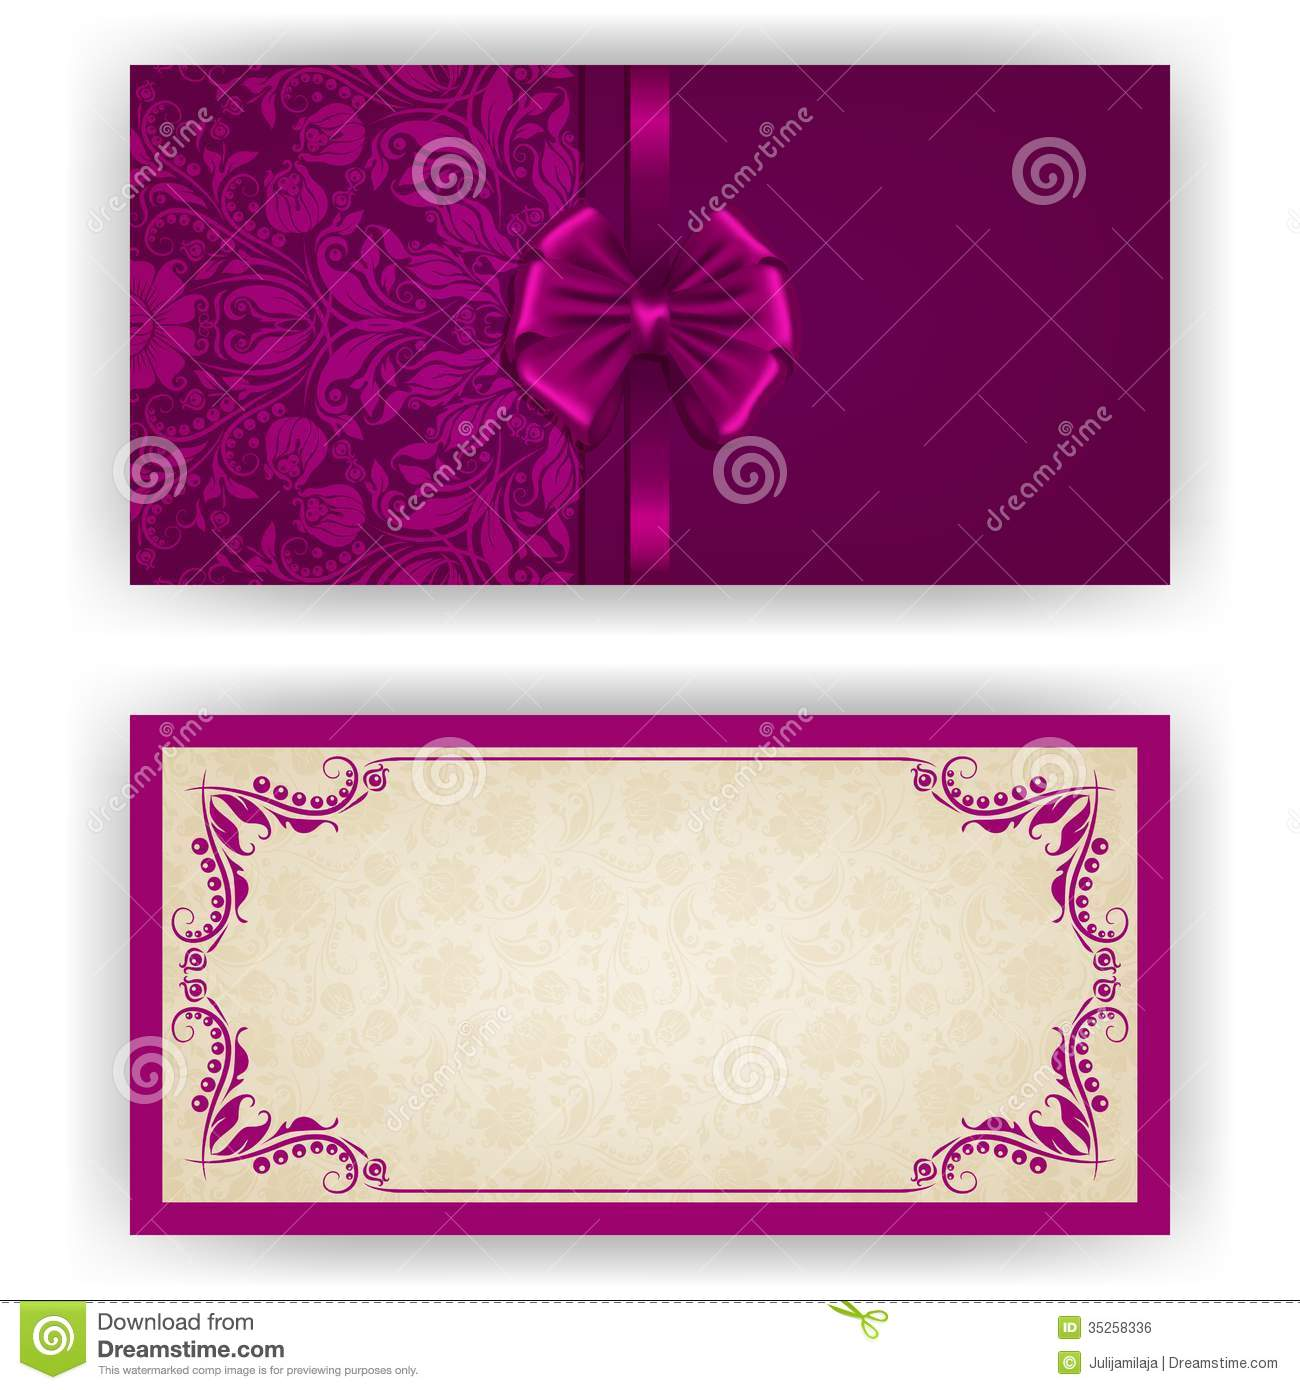 Elegant vector template for luxury invitation stock vector elegant template luxury invitation card with lace ornament bow place for text floral elements ornate background vector illustration eps 10 stopboris Image collections